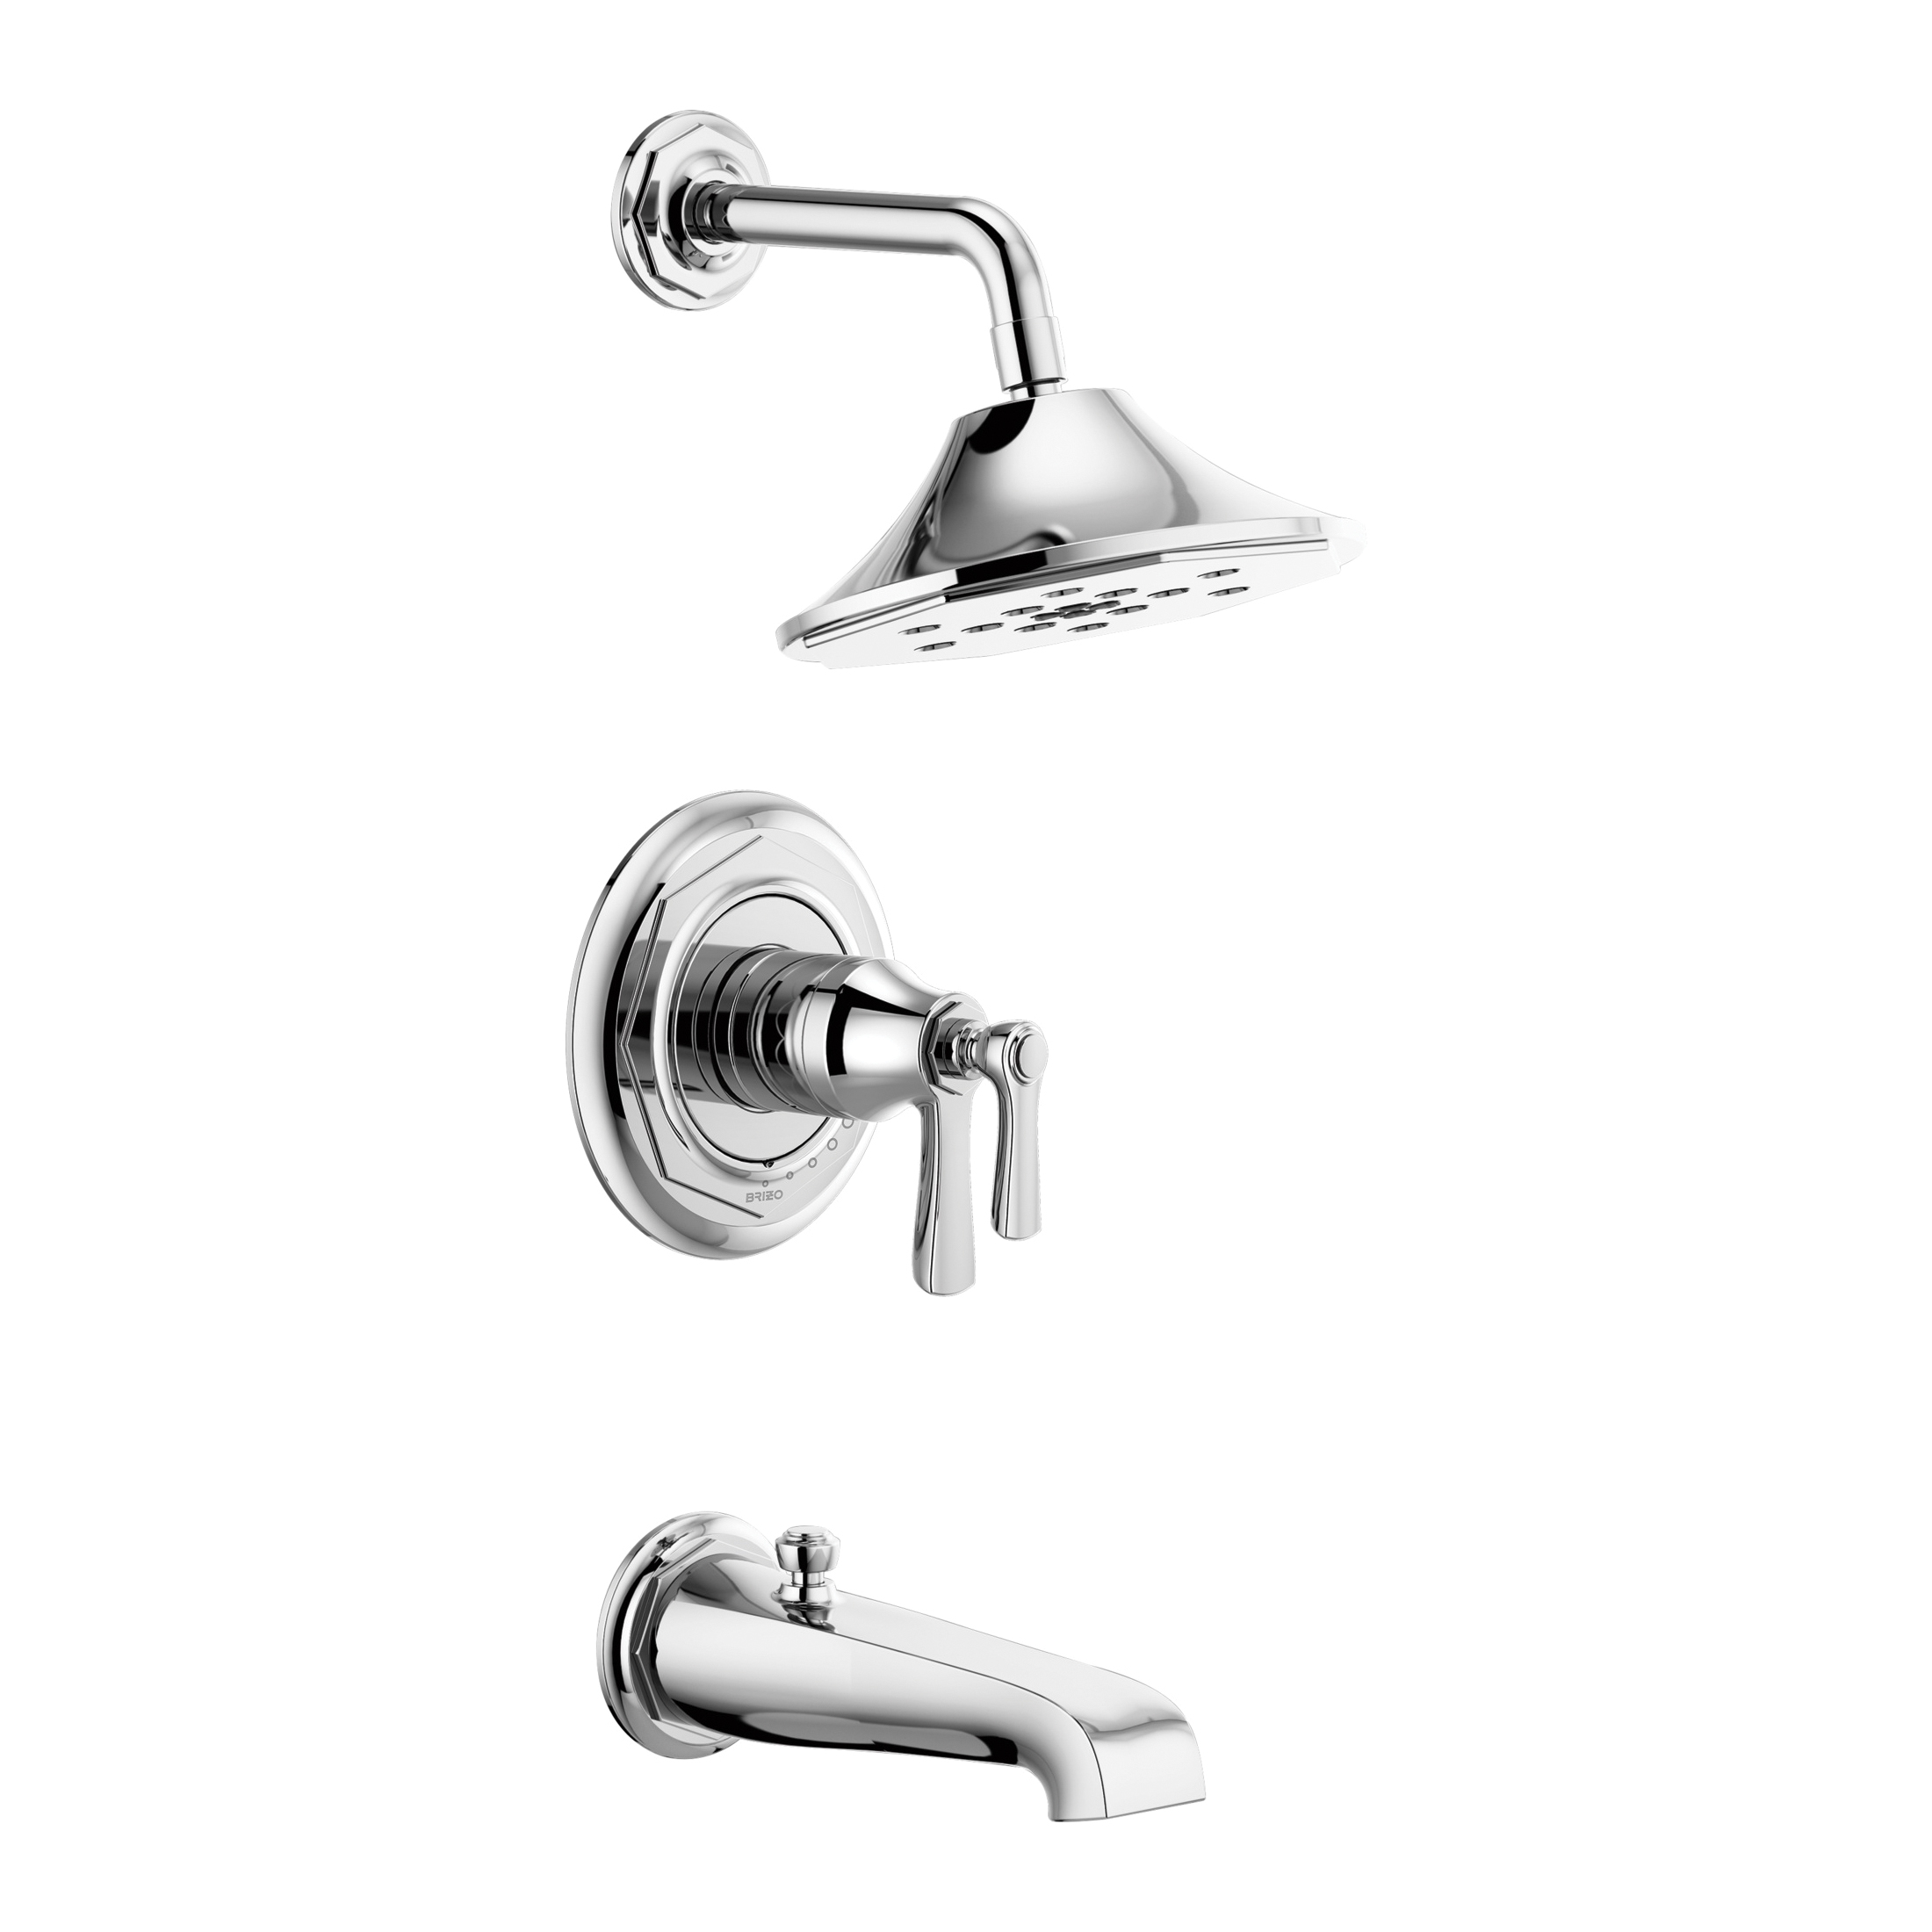 Consolidated Supply Co Brizo T60461 Pc Tempassure Tub And Shower Faucet Trim 2 Gpm Shower Hand Shower Yes No No Chrome Plated